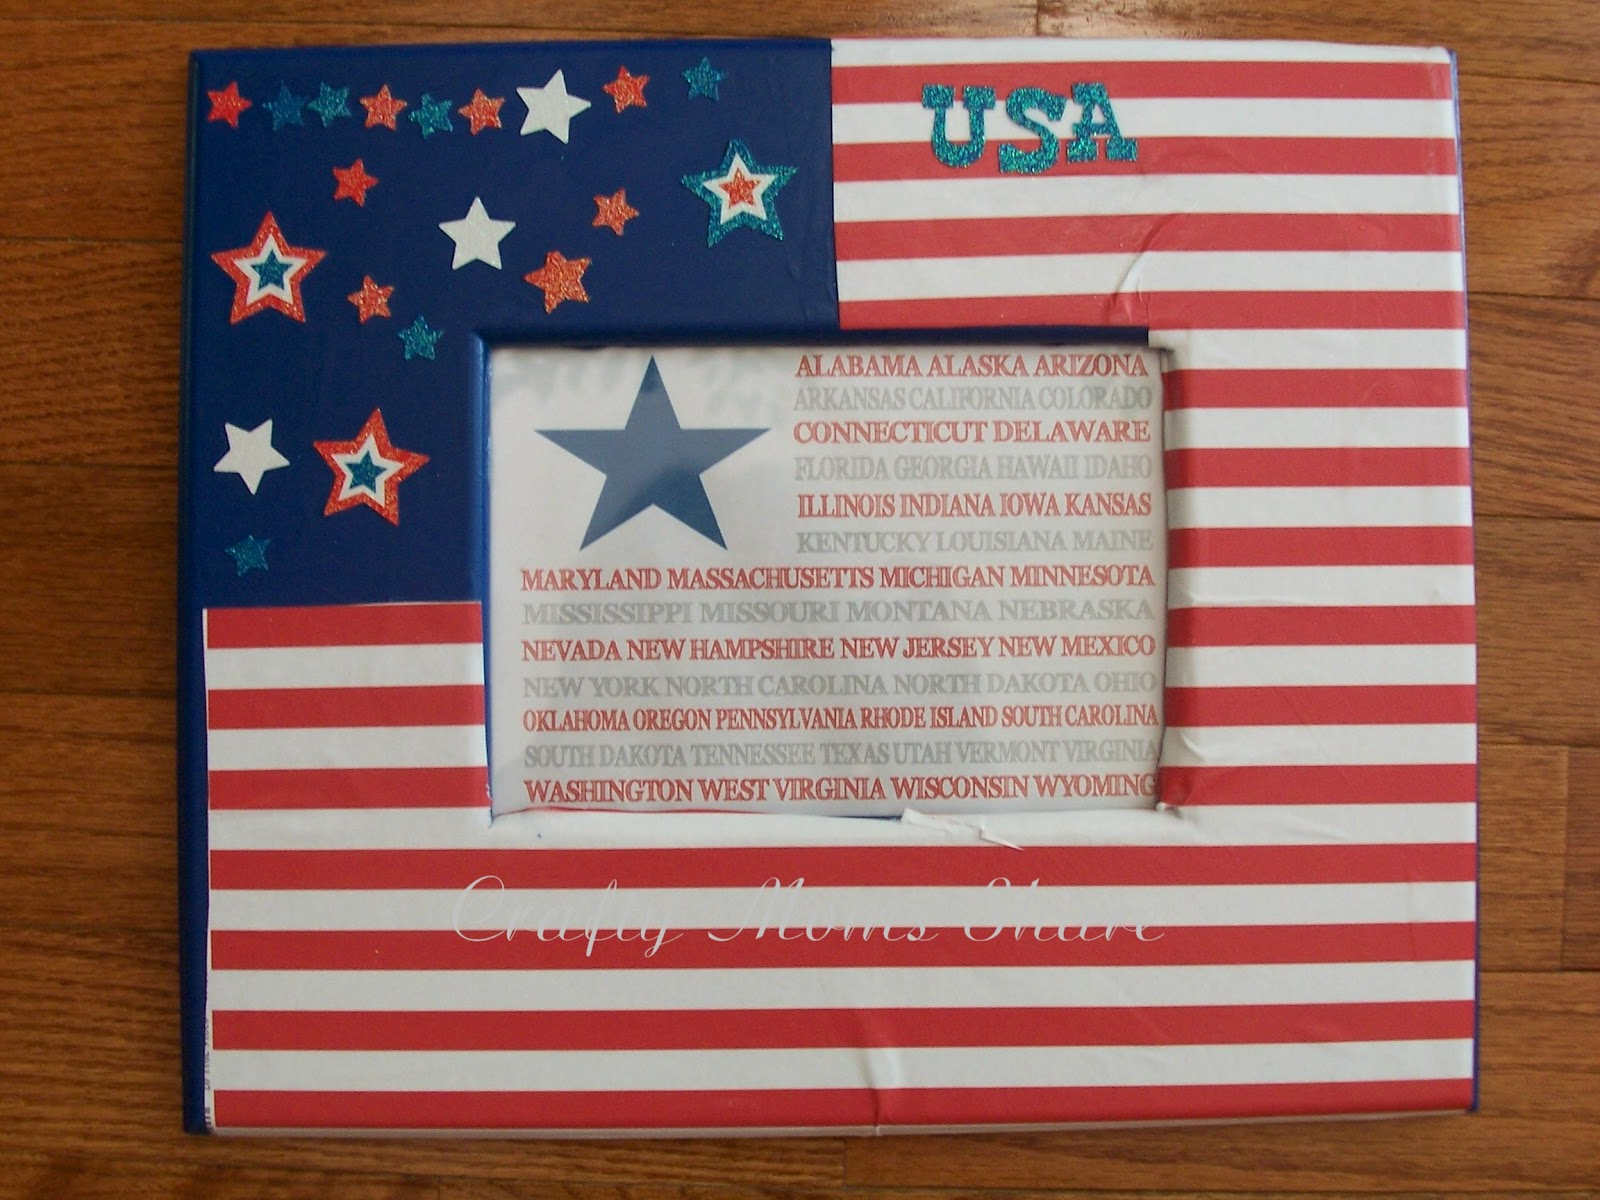 http://craftymomsshare.blogspot.com/2012/06/fourth-of-july-decorations.html